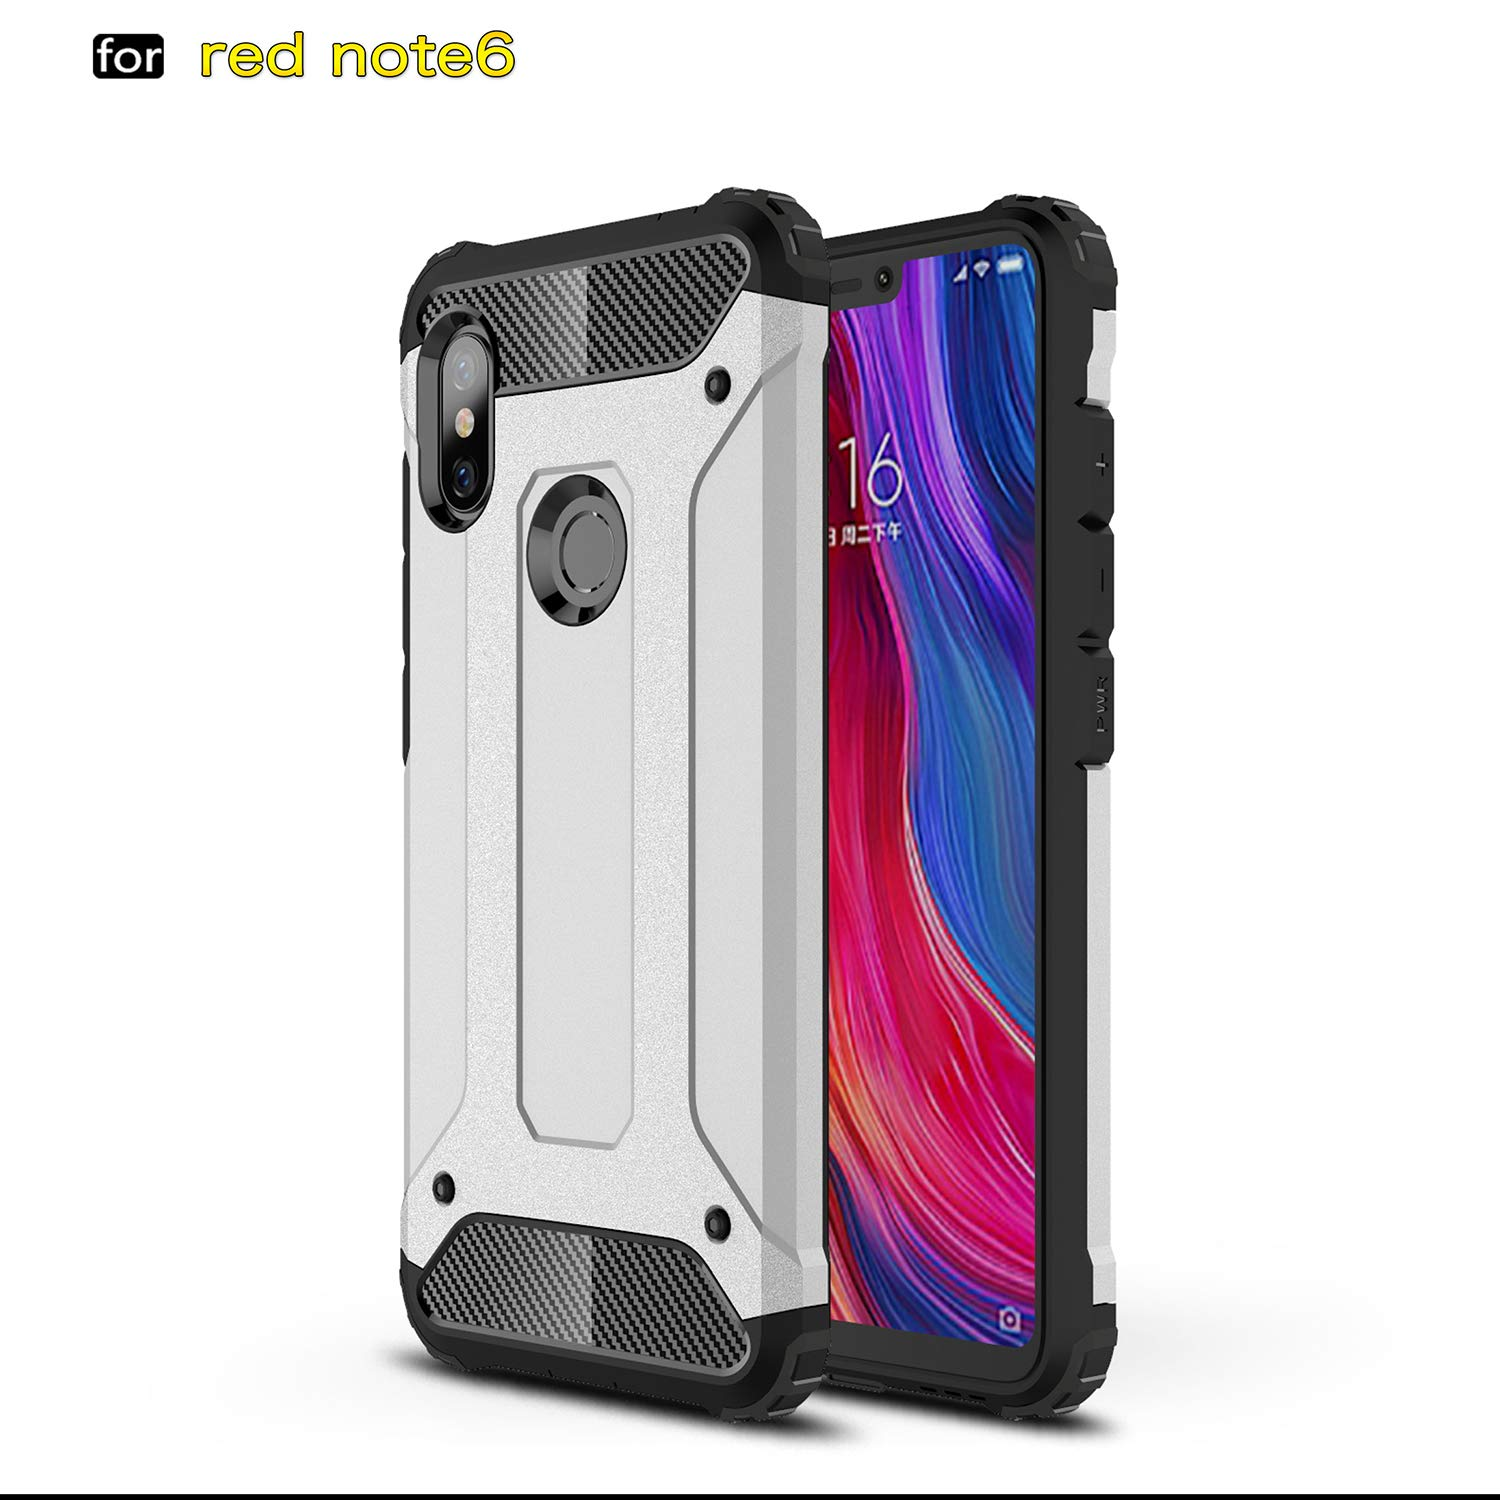 MYLB Xiaomi Redmi Note 6 Pro Case/Redmi Note 6 case, Hybrid Rugged Dual Layer Armor Grip with Rugged Yet Resilient Shock Absorption Design for Xiaomi Redmi Note 6 Pro/Redmi Note 6 Smartphone (Silver) OEM Xiaomi Redmi Note 6/Redmi Note 6 Pro